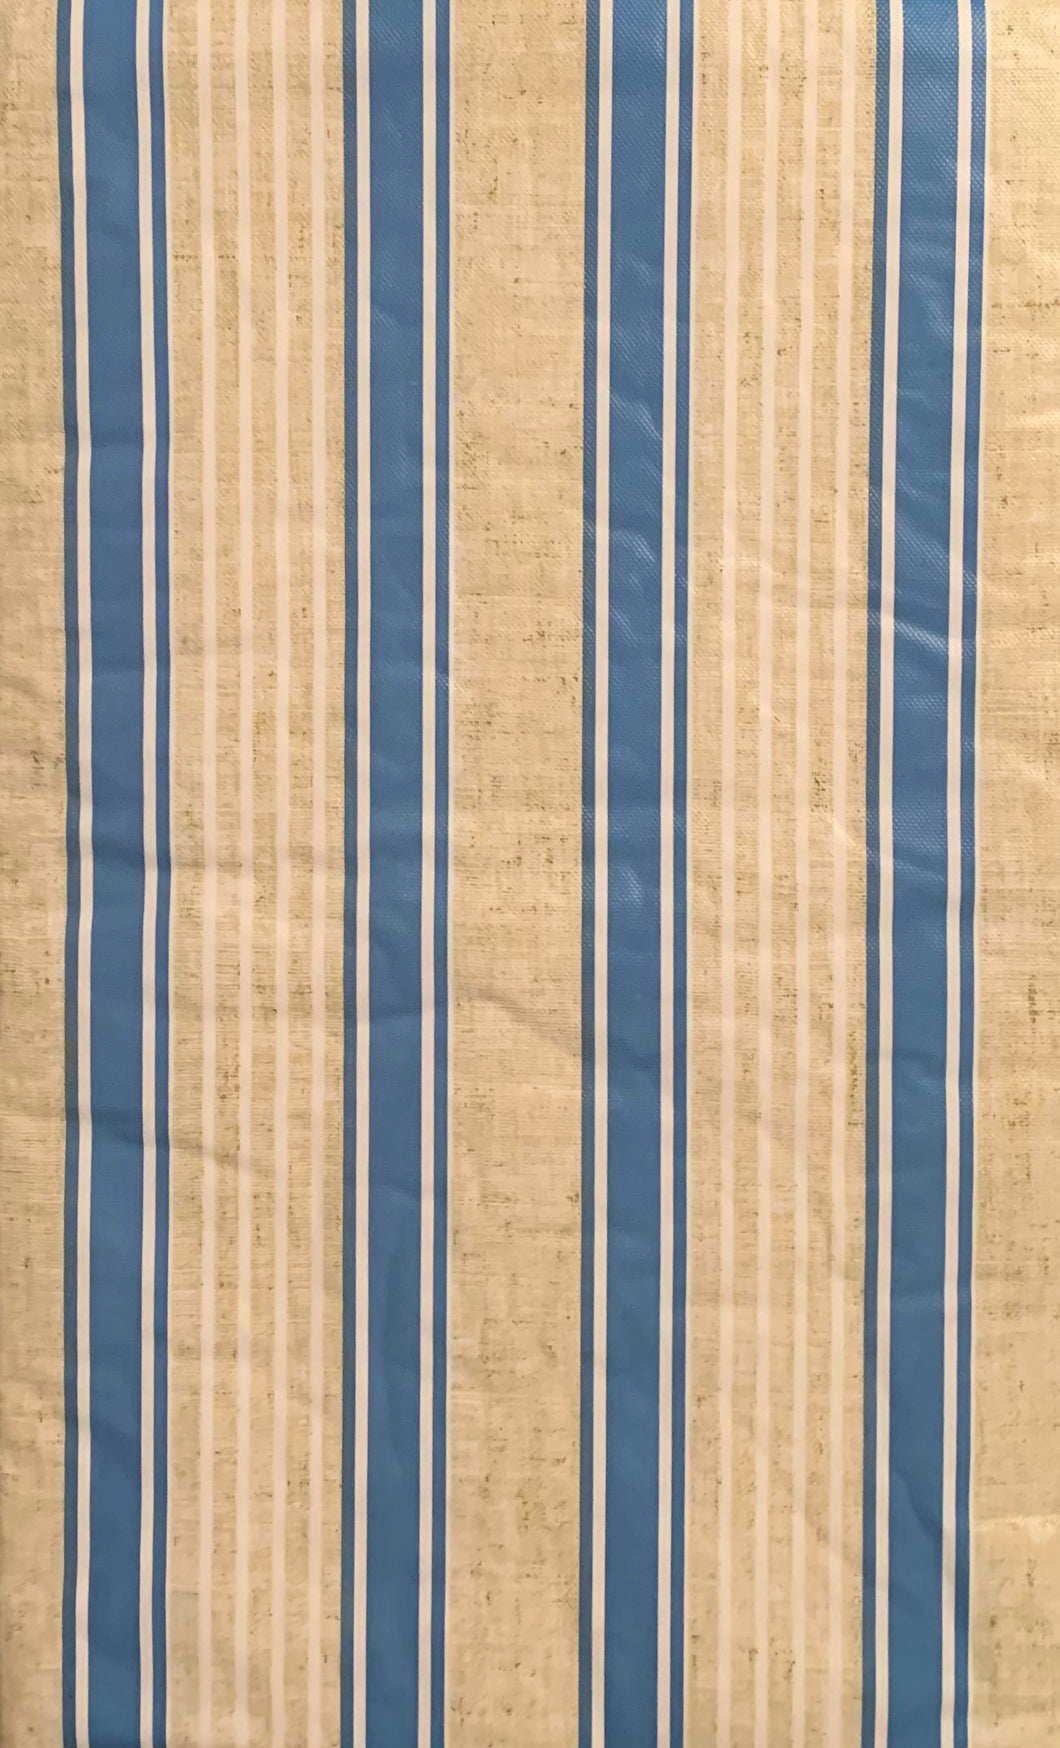 Blue Sandy Stripes Vinyl Flannel Back Tablecloth 60 Round Elrene